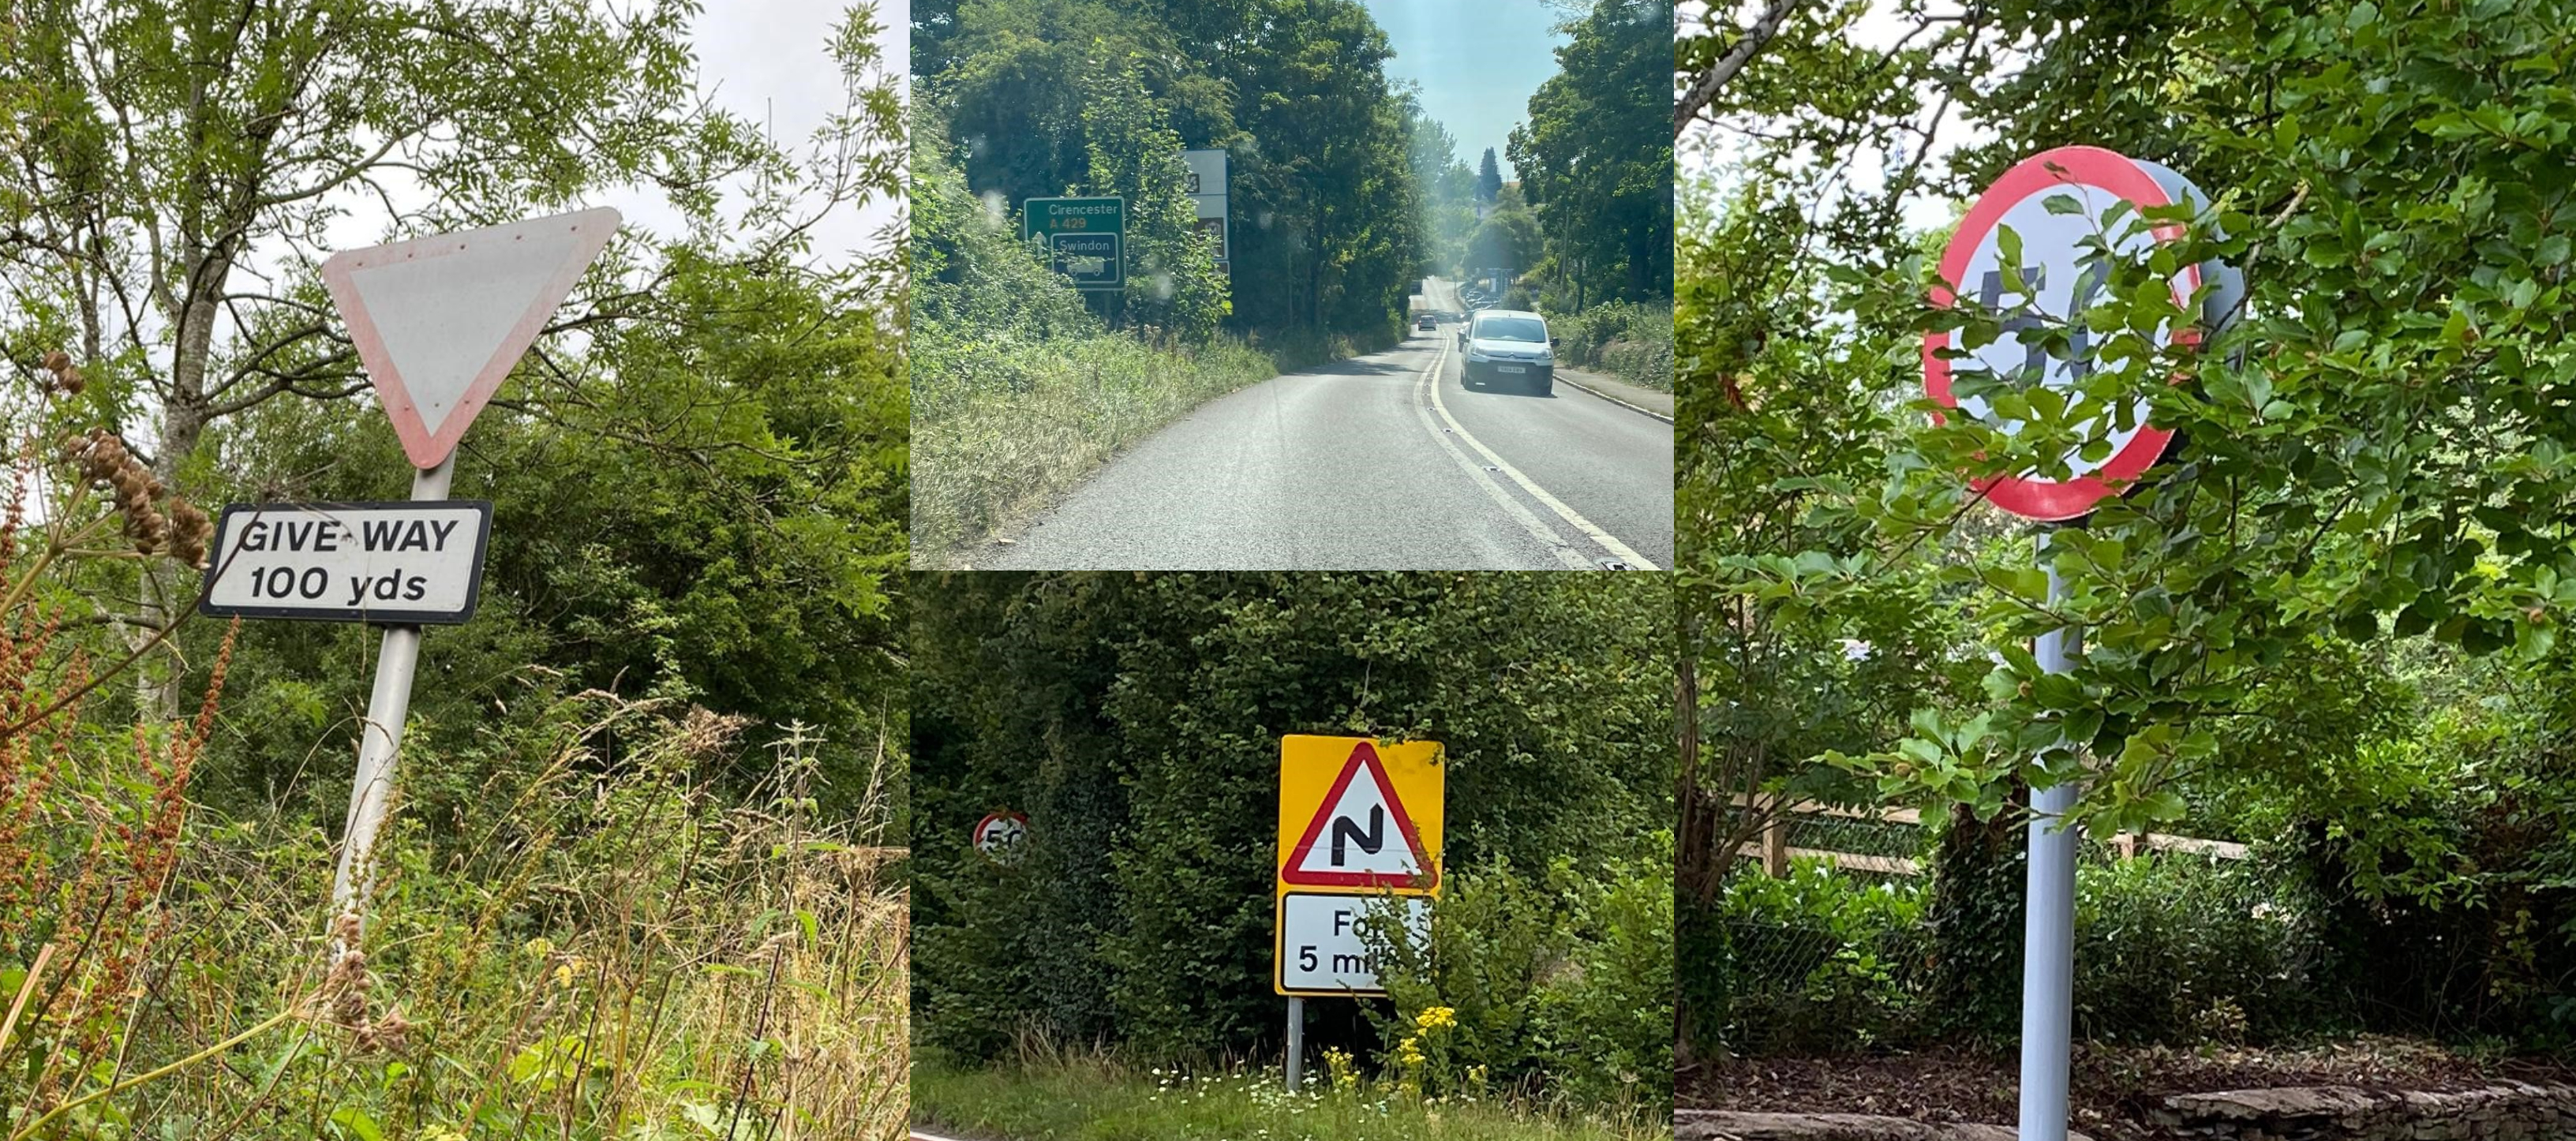 Campaign to clear Gloucestershire's dangerous road signs